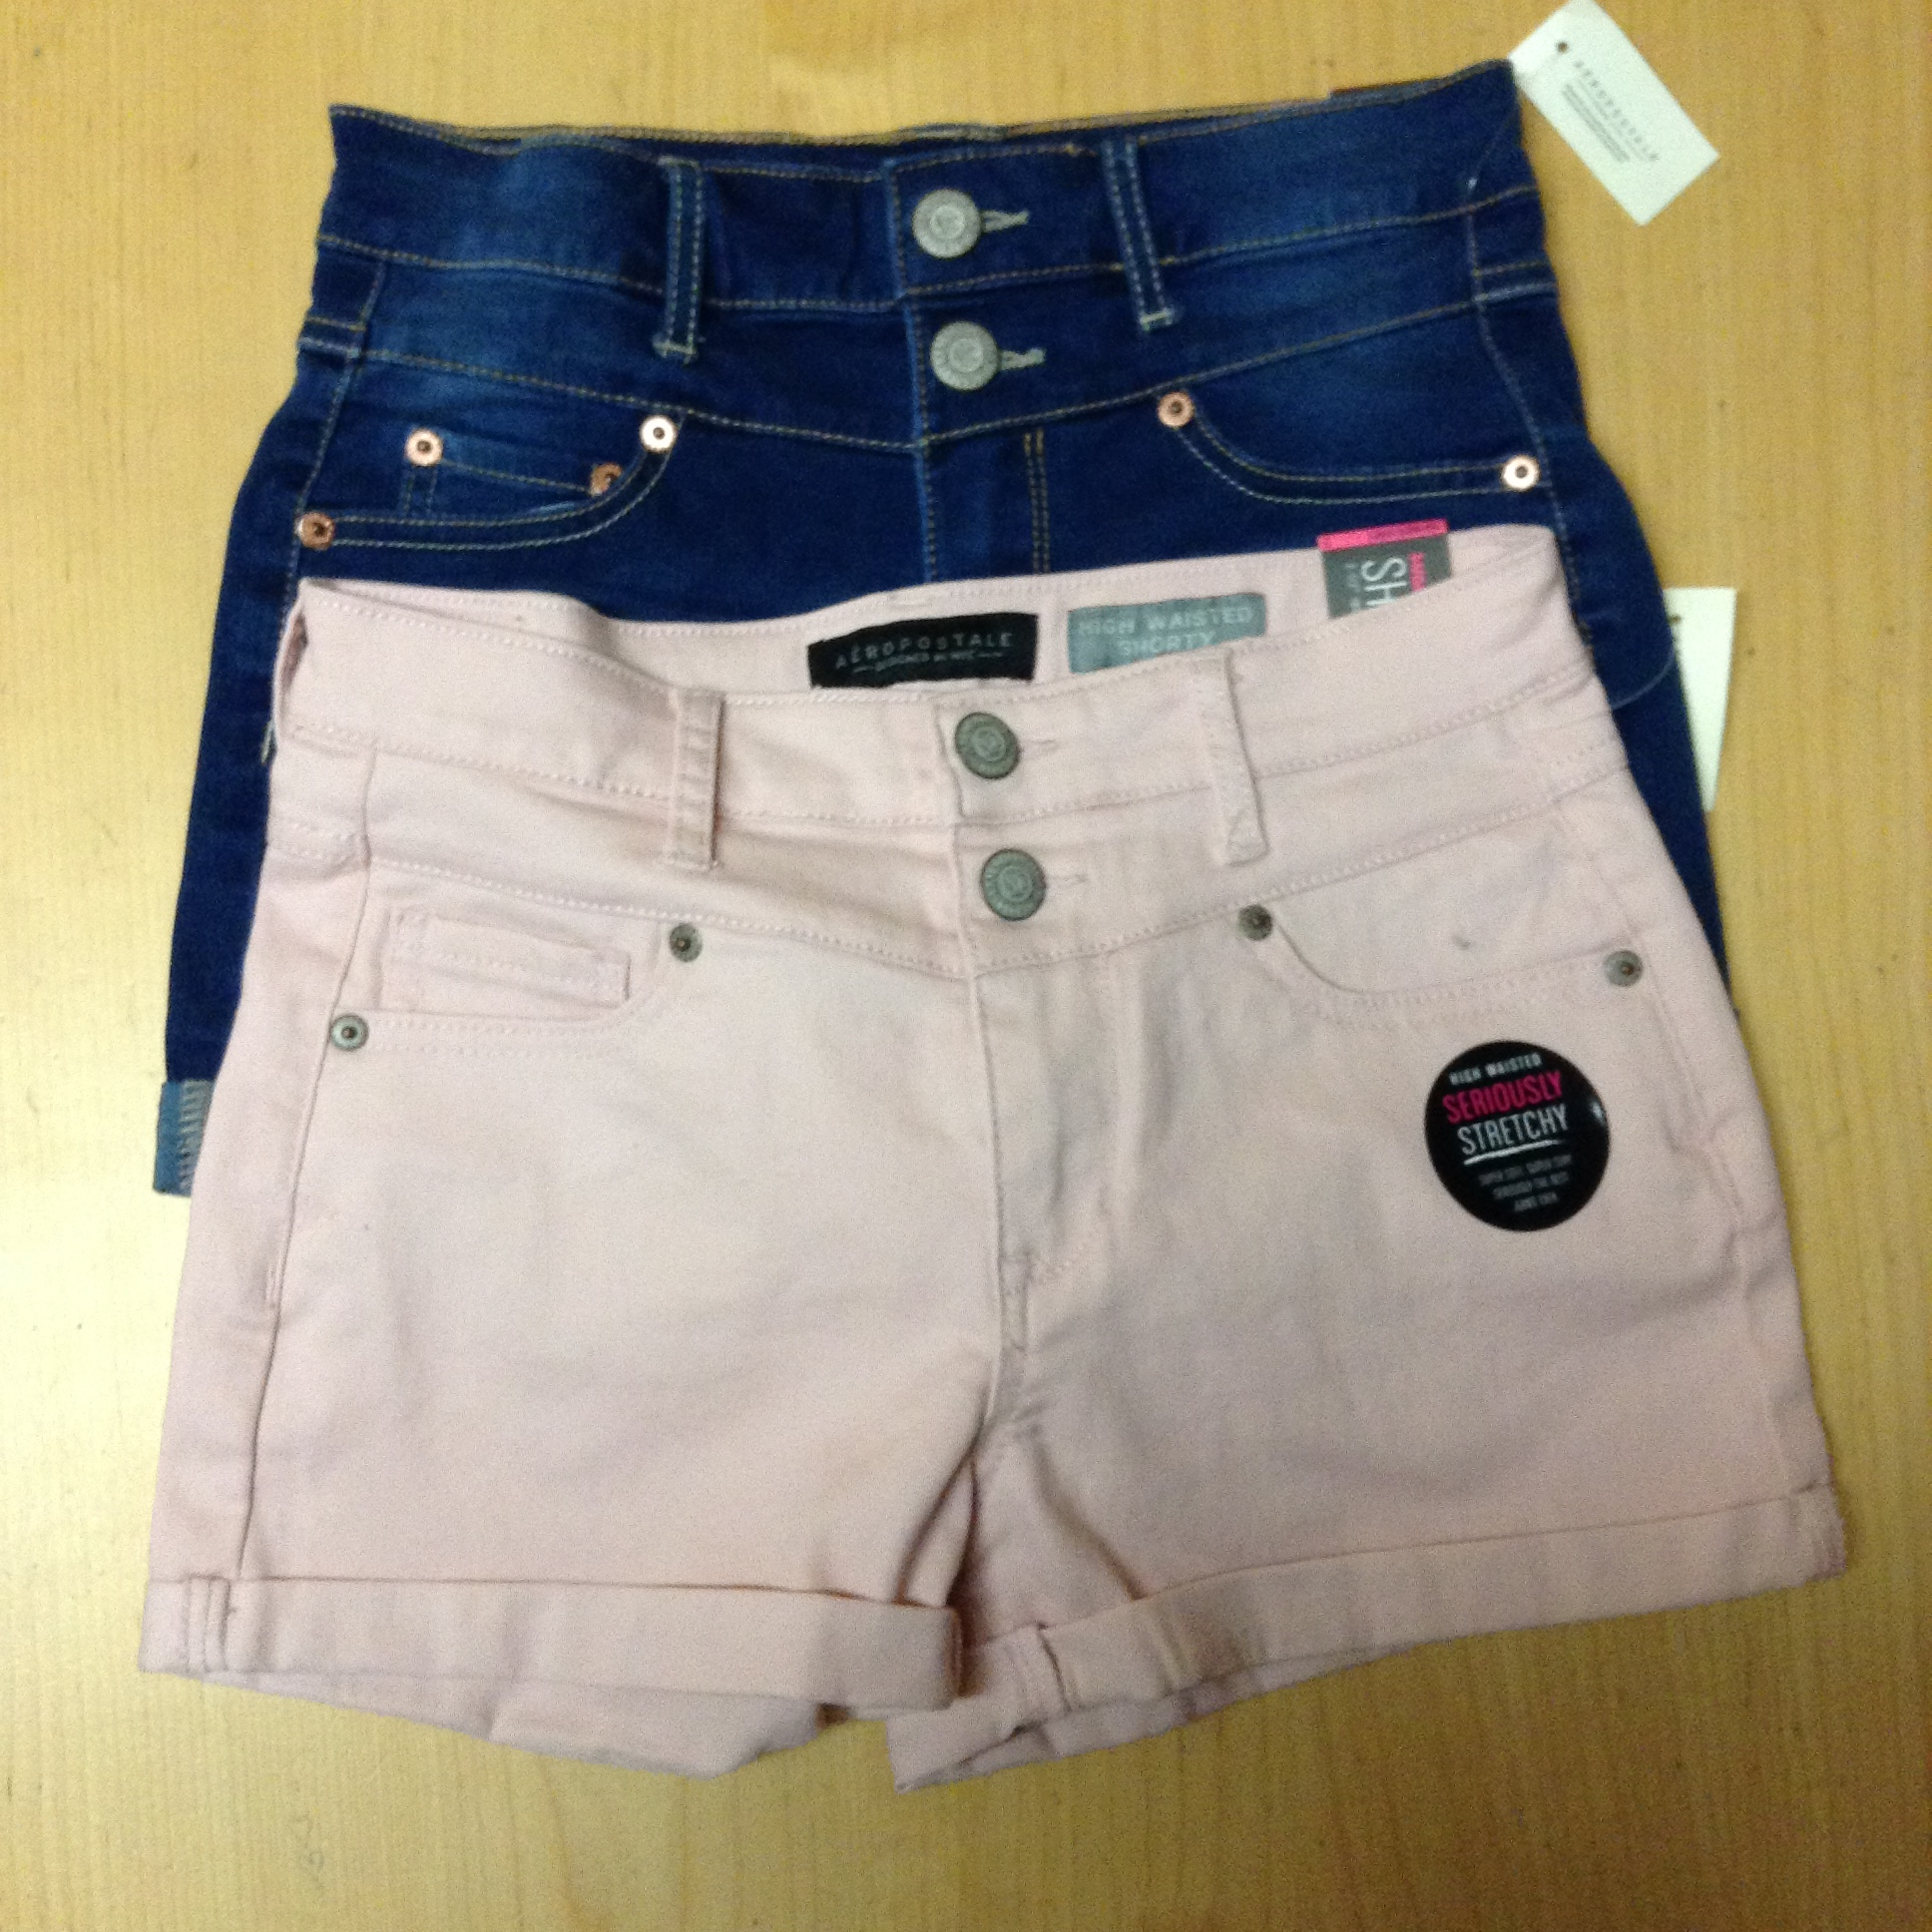 """2fdbfe5db9a8 I got two pairs of high-wasted """"seriously stretchy shorts. They definitely  live up to the name because they are super comfortable. I decided to get  one ..."""